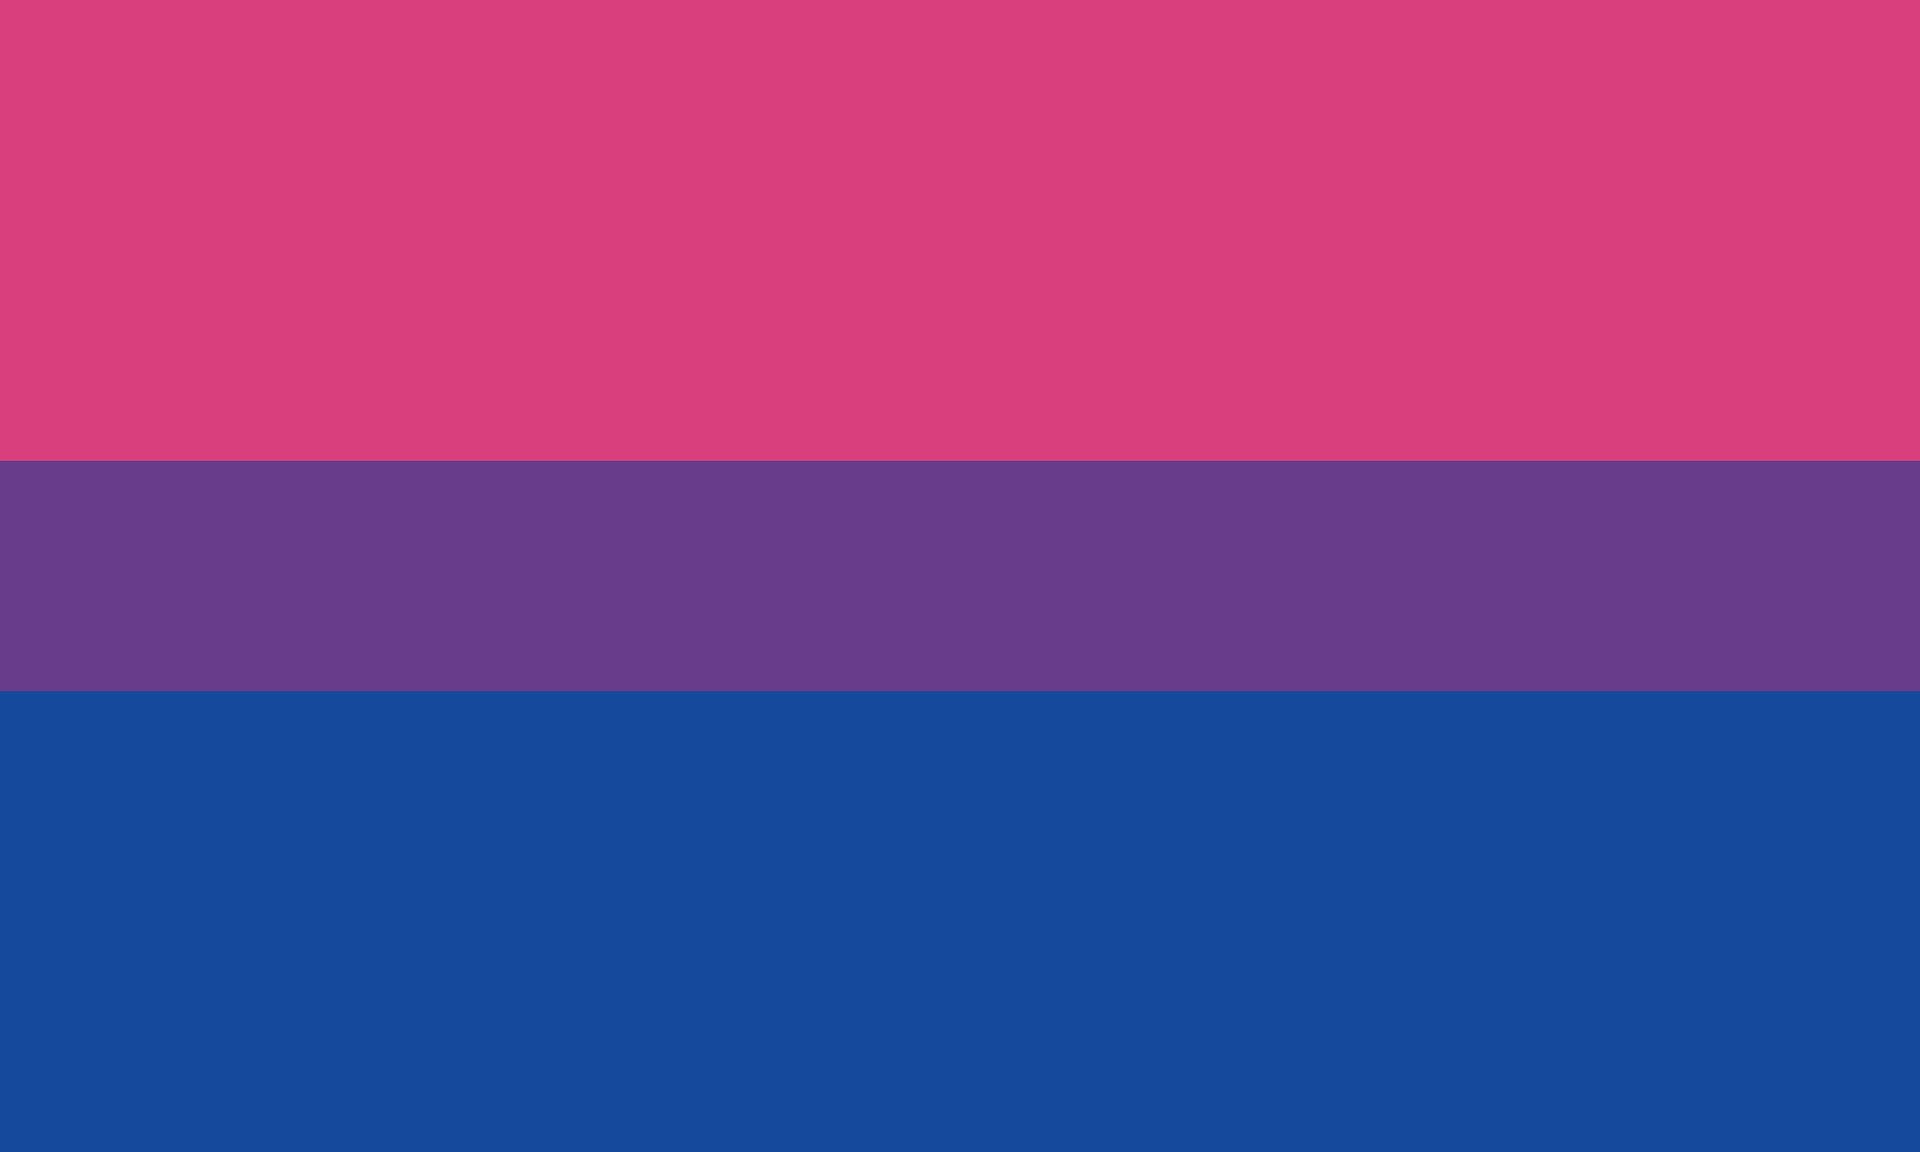 coming out as a bisexual mom is a lot more complicated than is realized by many due to closed-mindedness and bi-erasure